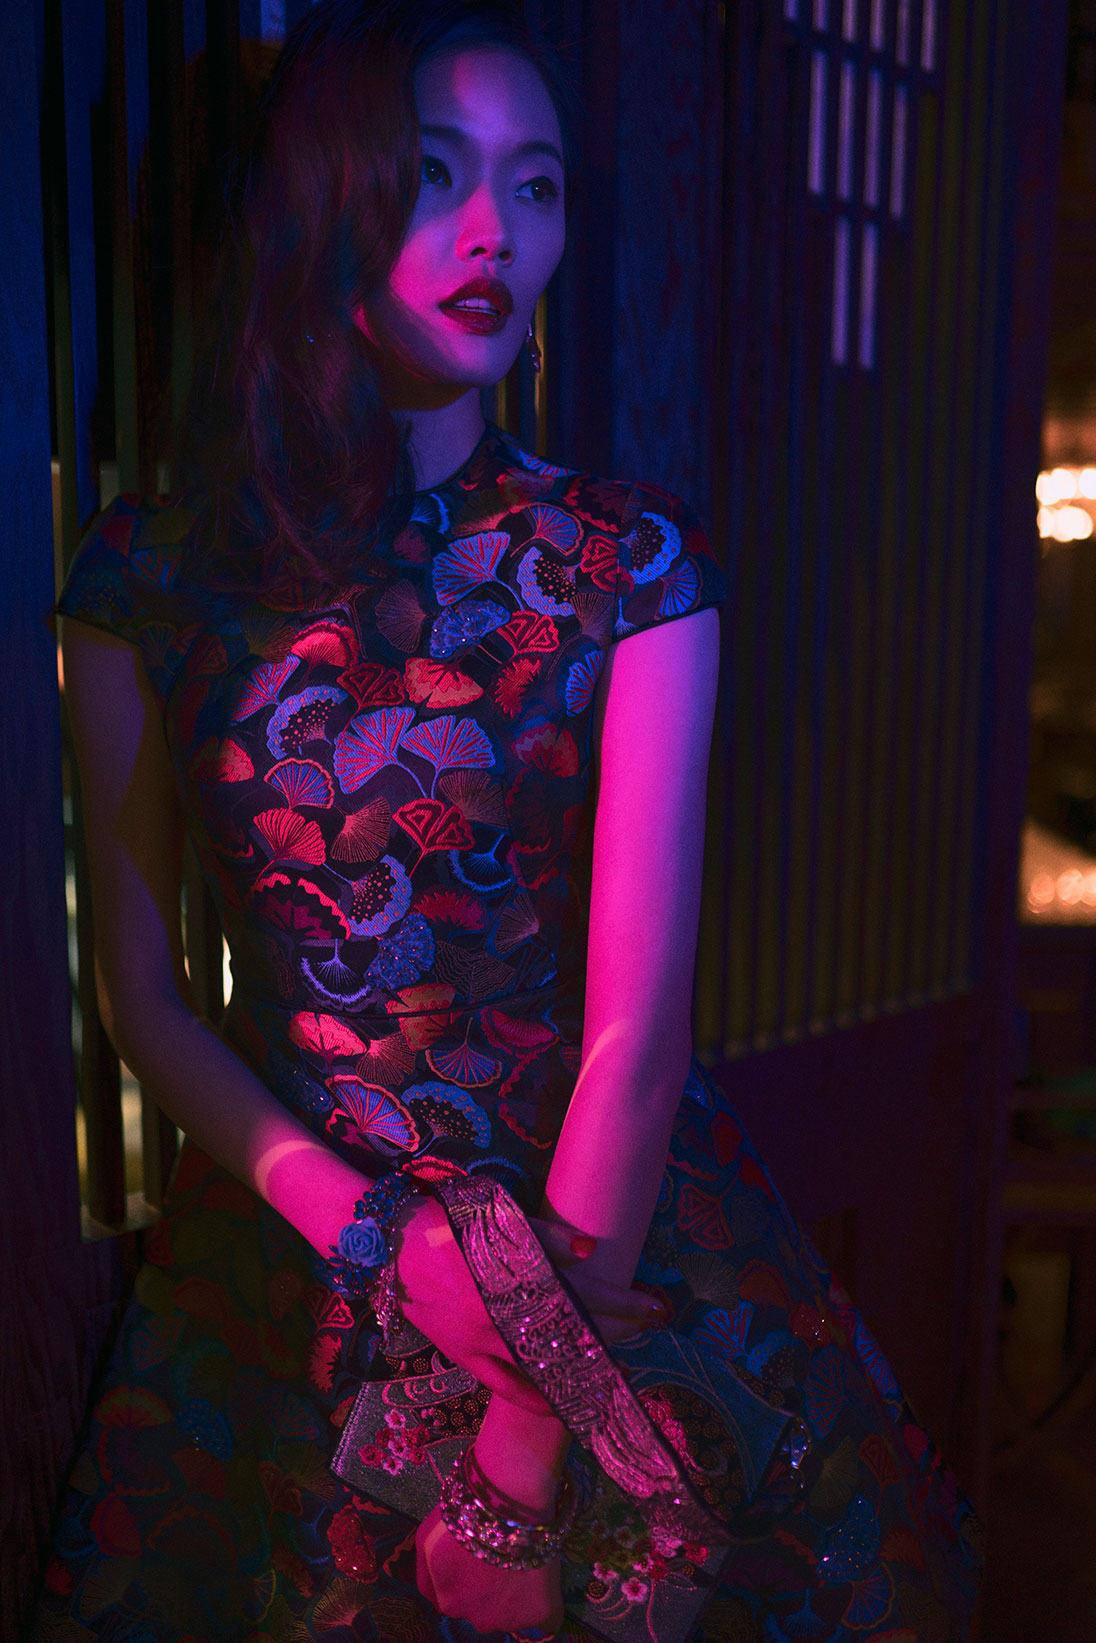 [Alt text] A model wears a chinoiserie-inspired evening look